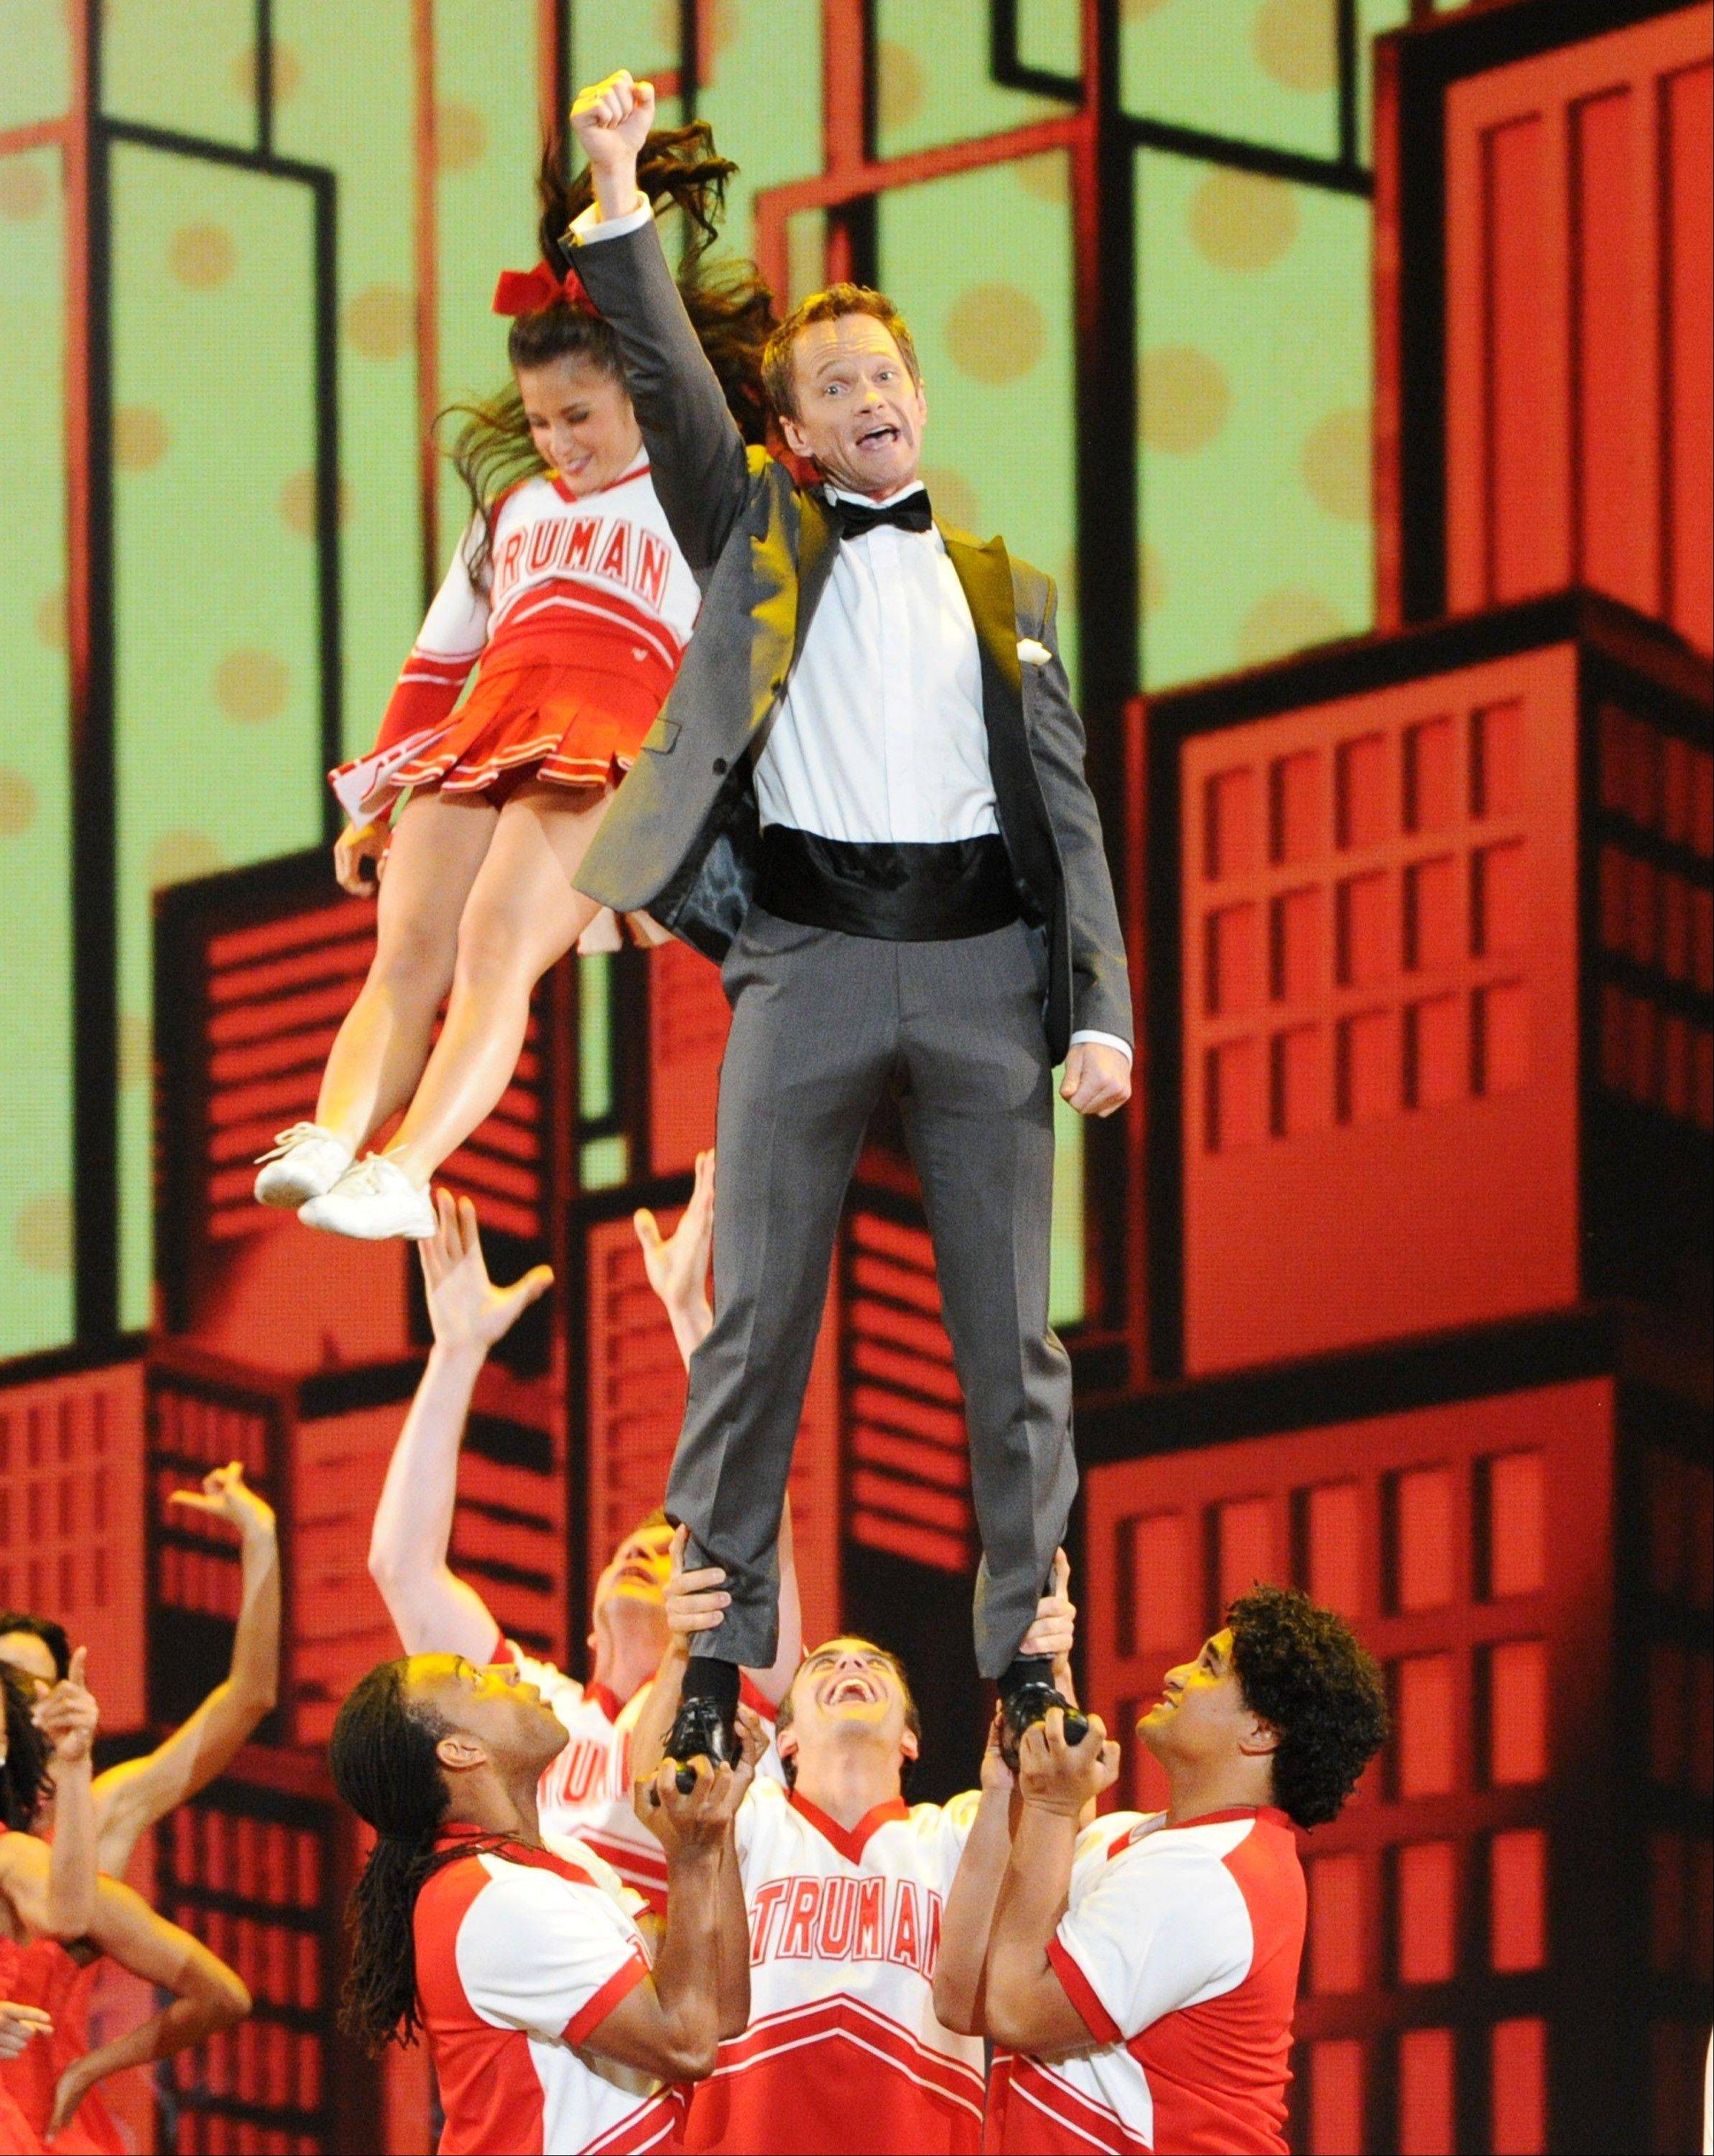 Actor Neil Patrick Harris performs on stage at the 67th Annual Tony Awards, on Sunday, June 9, 2013 in New York.